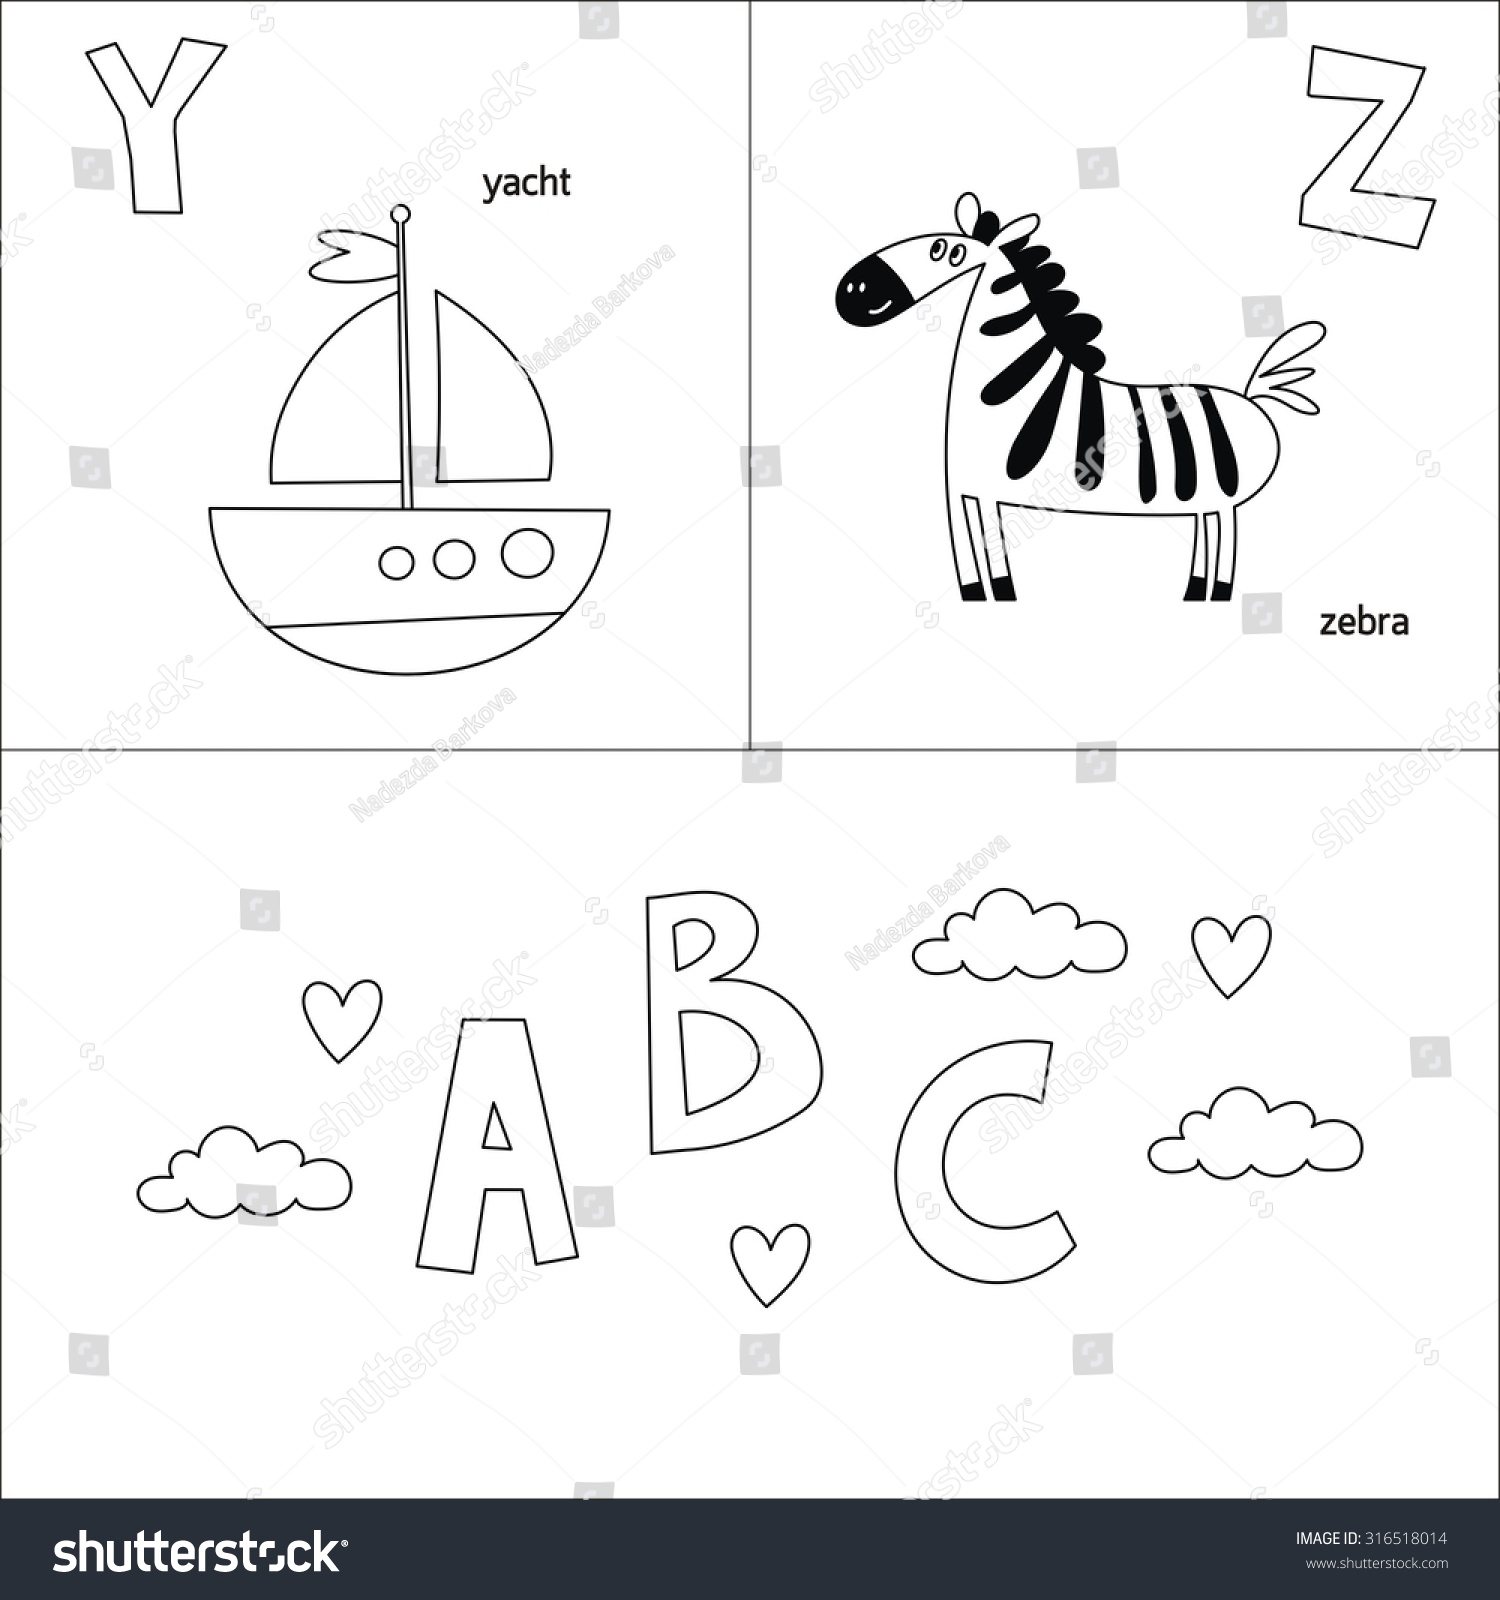 abc vector coloring page kids stock vector 316518014 shutterstock